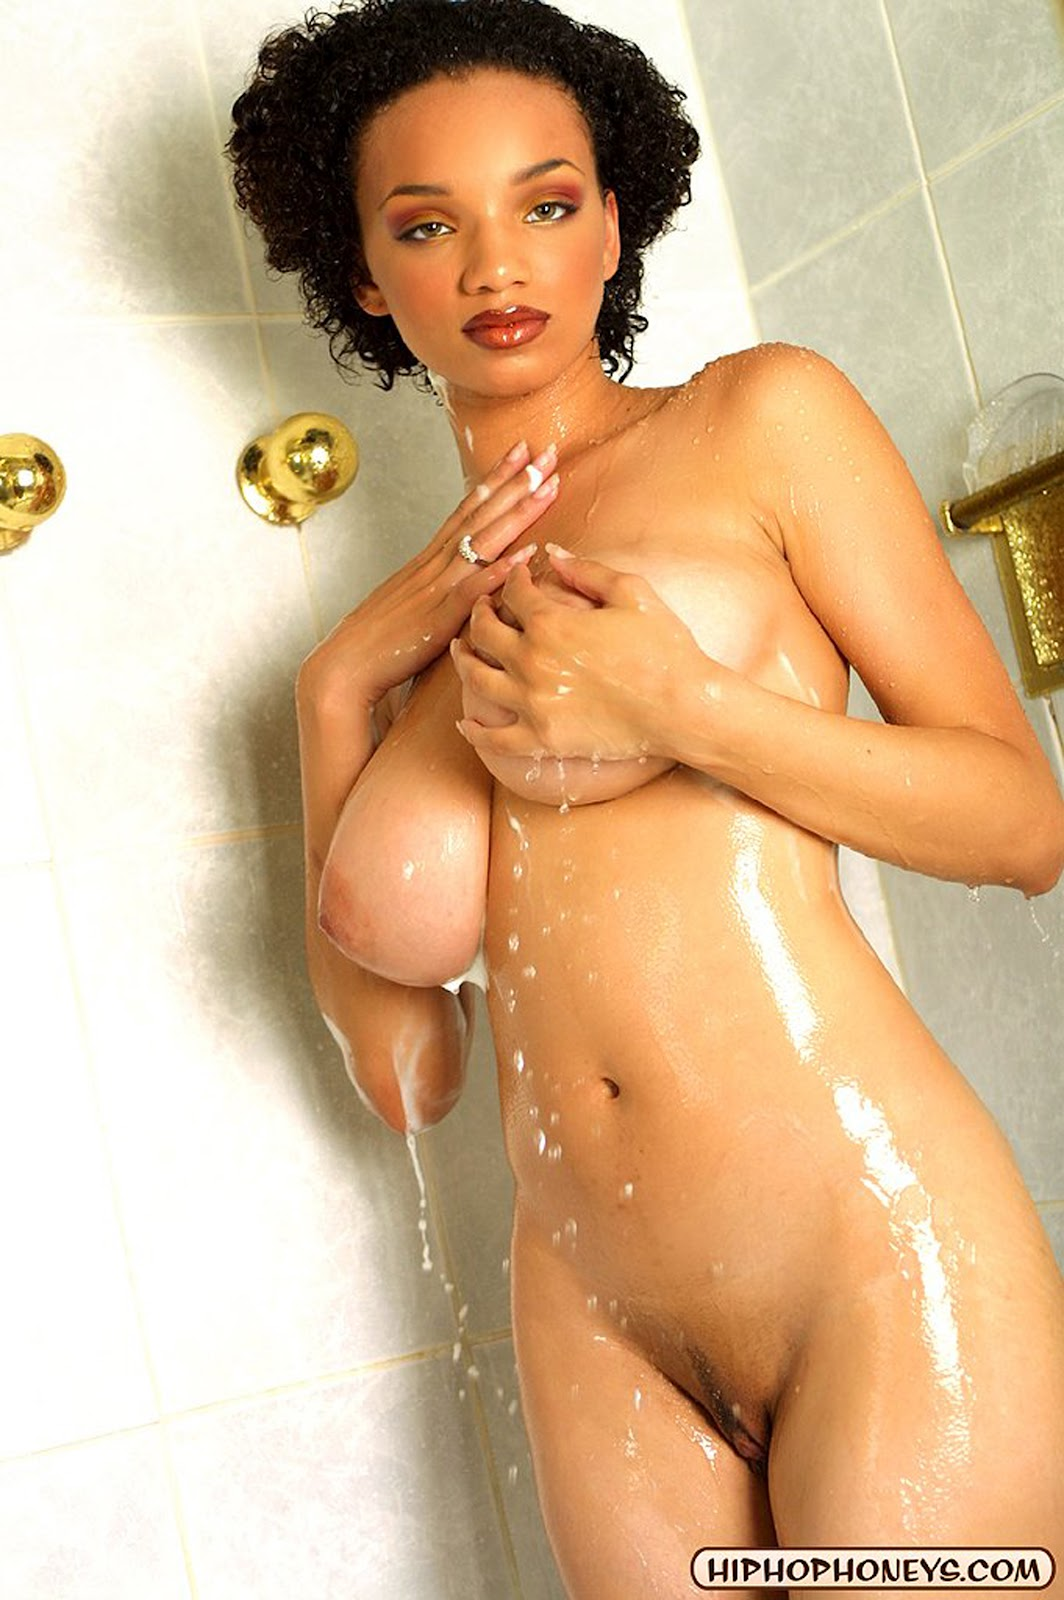 black girls naked in the shower